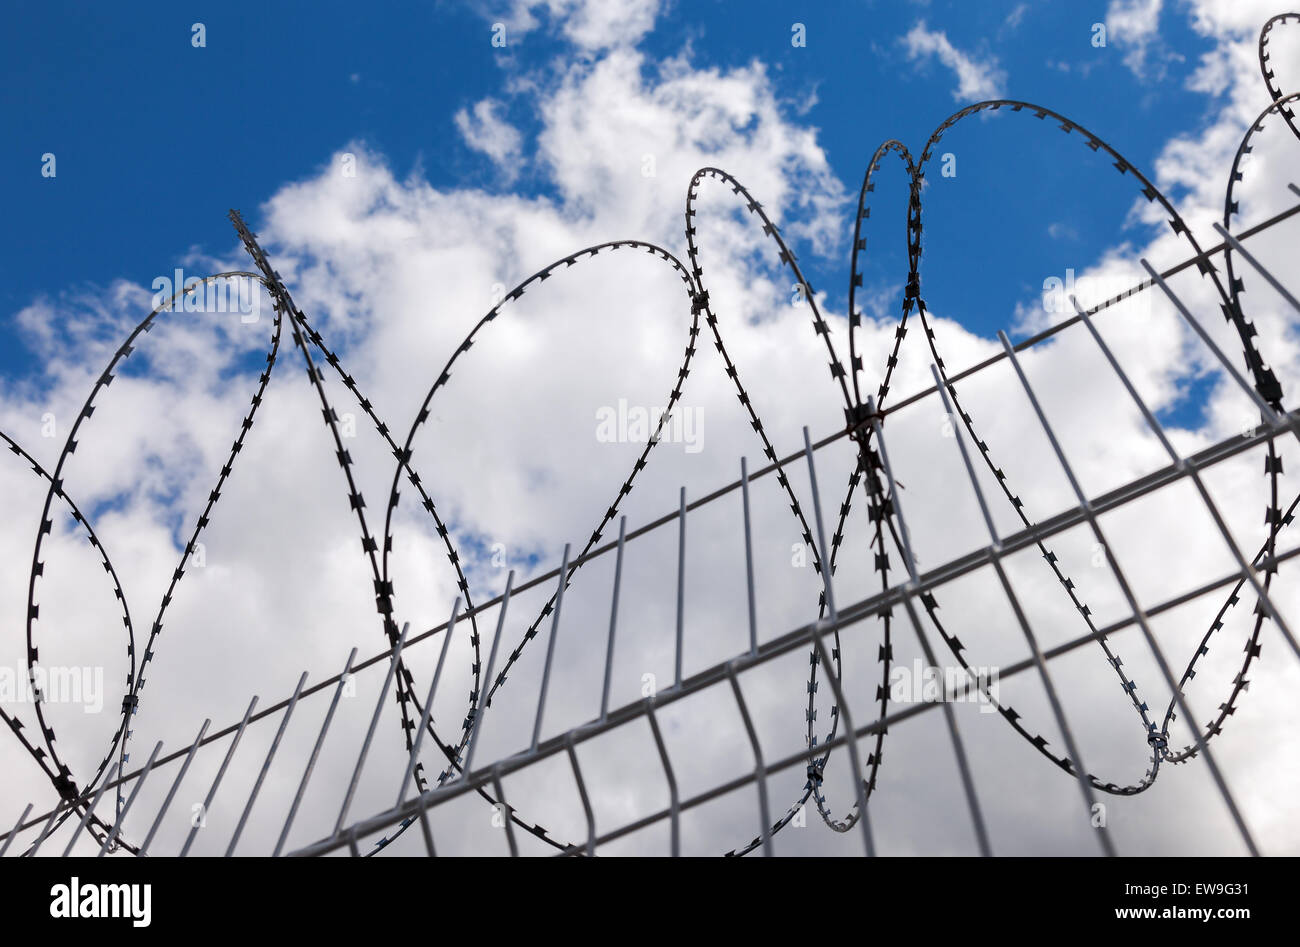 Barbed wire on blue sky background - Stock Image